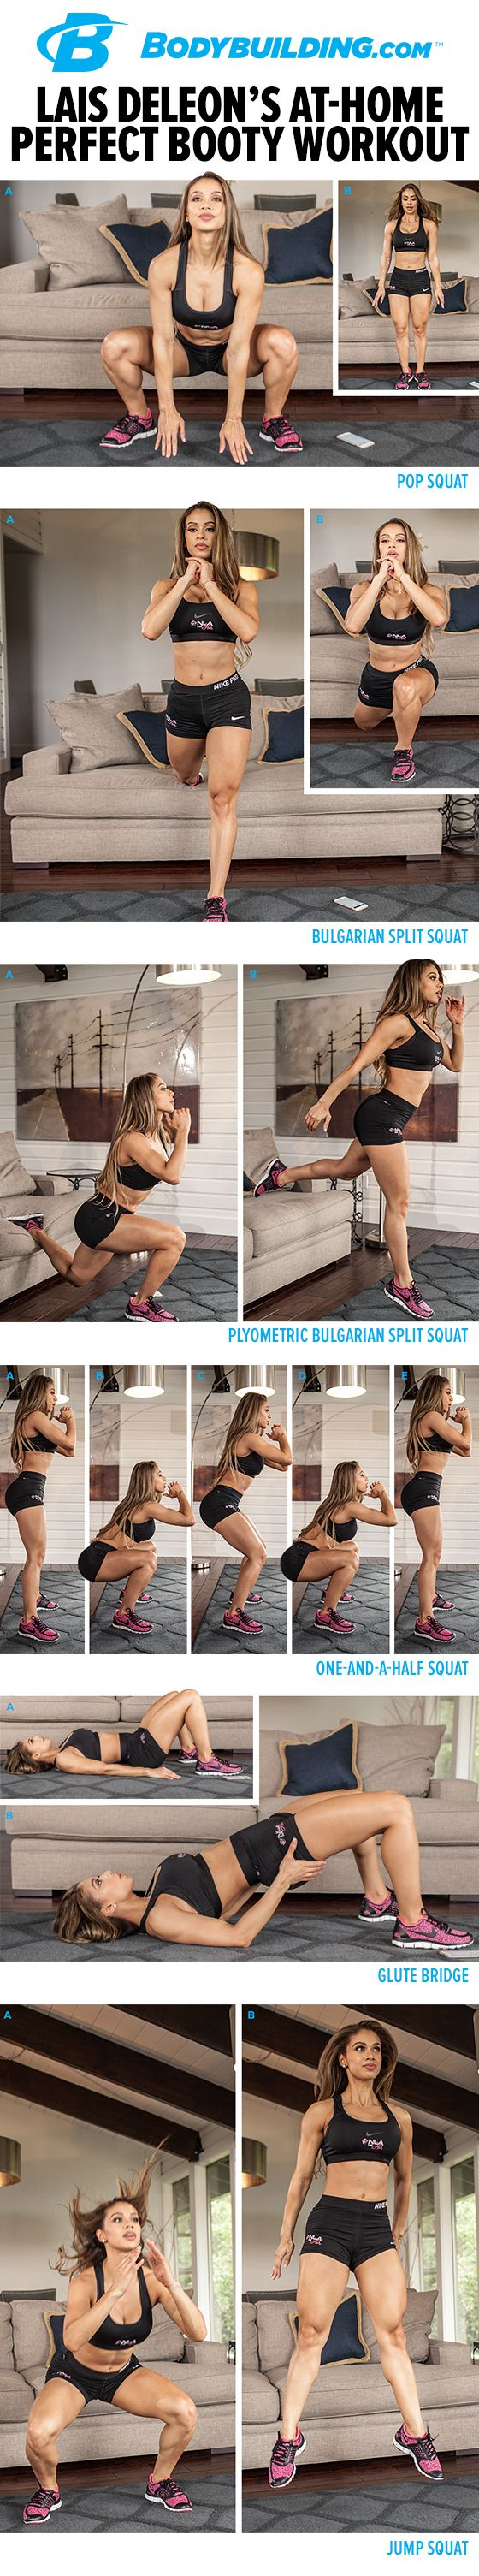 Lais DeLeon's At-Home Perfect Booty Workout! If you've got 20 minutes and a…